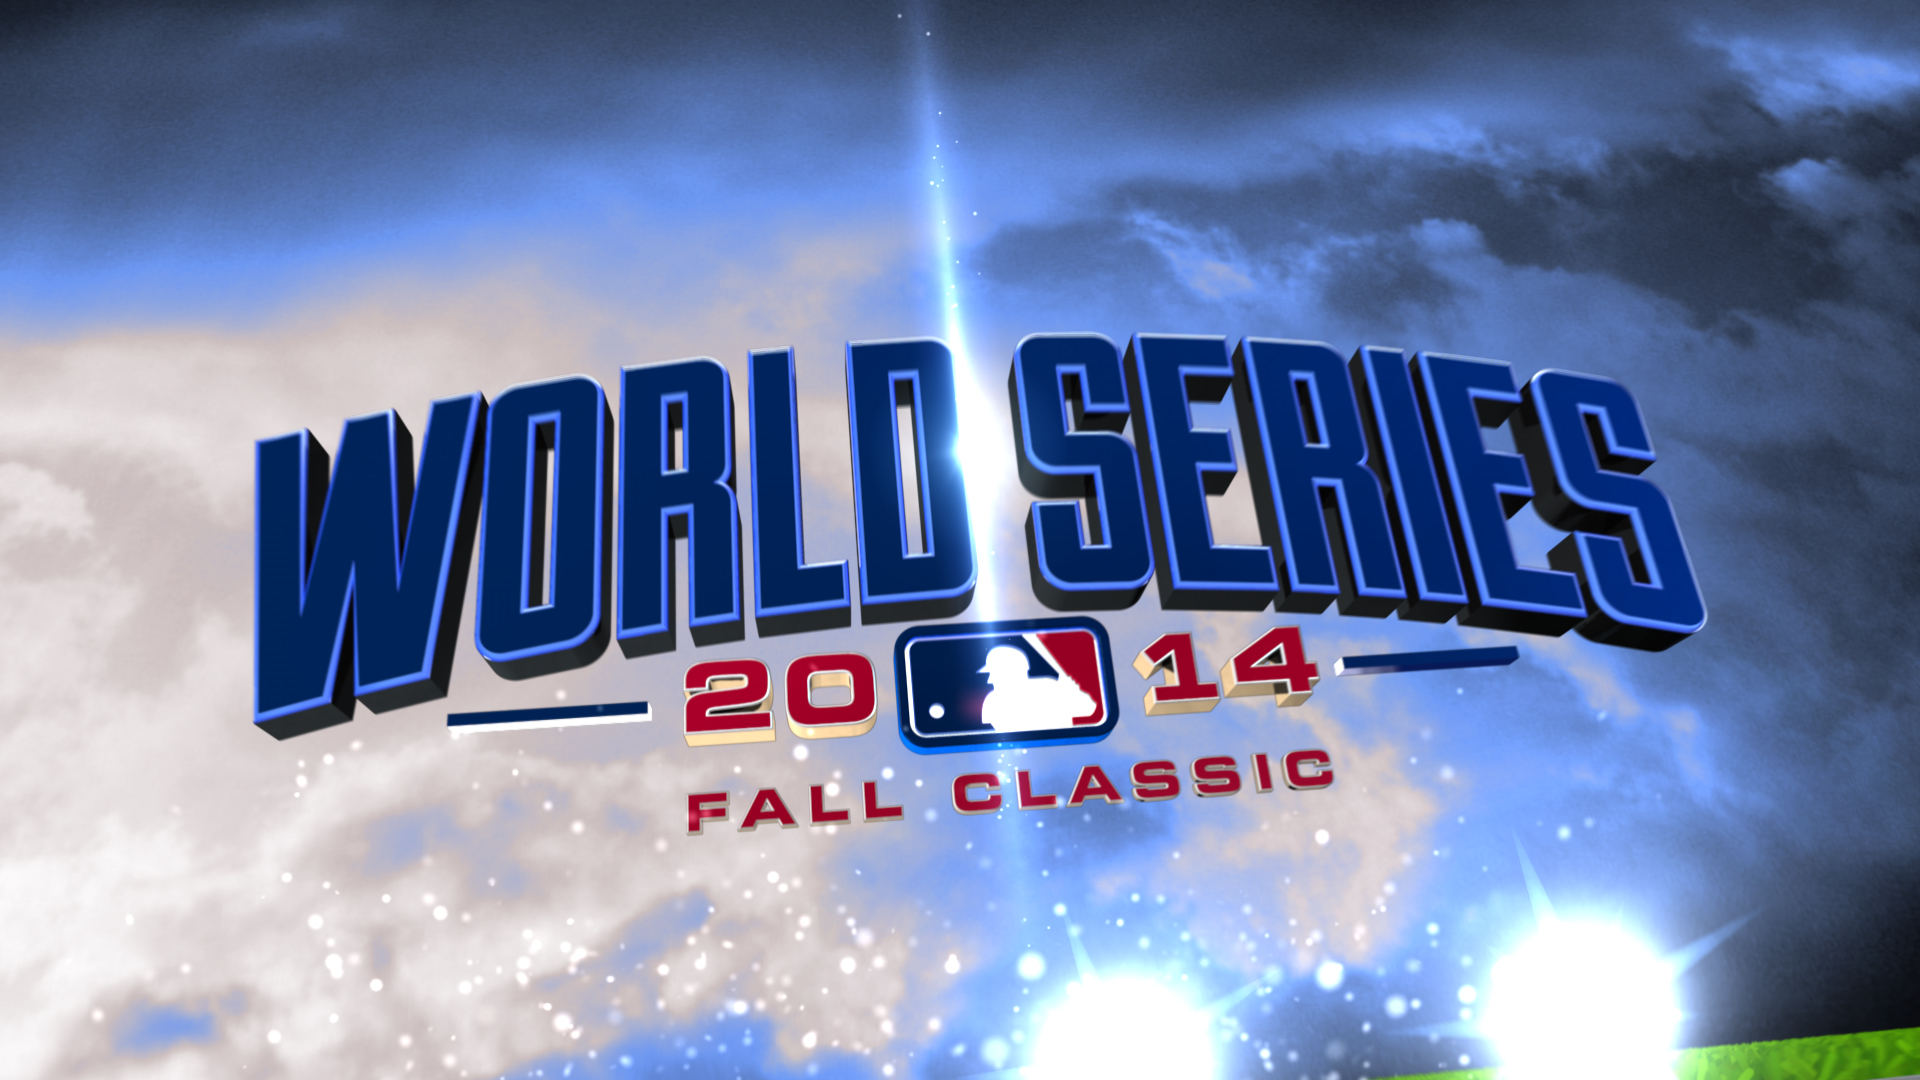 WS_2014_LOGO_TRANSITION_01.jpg